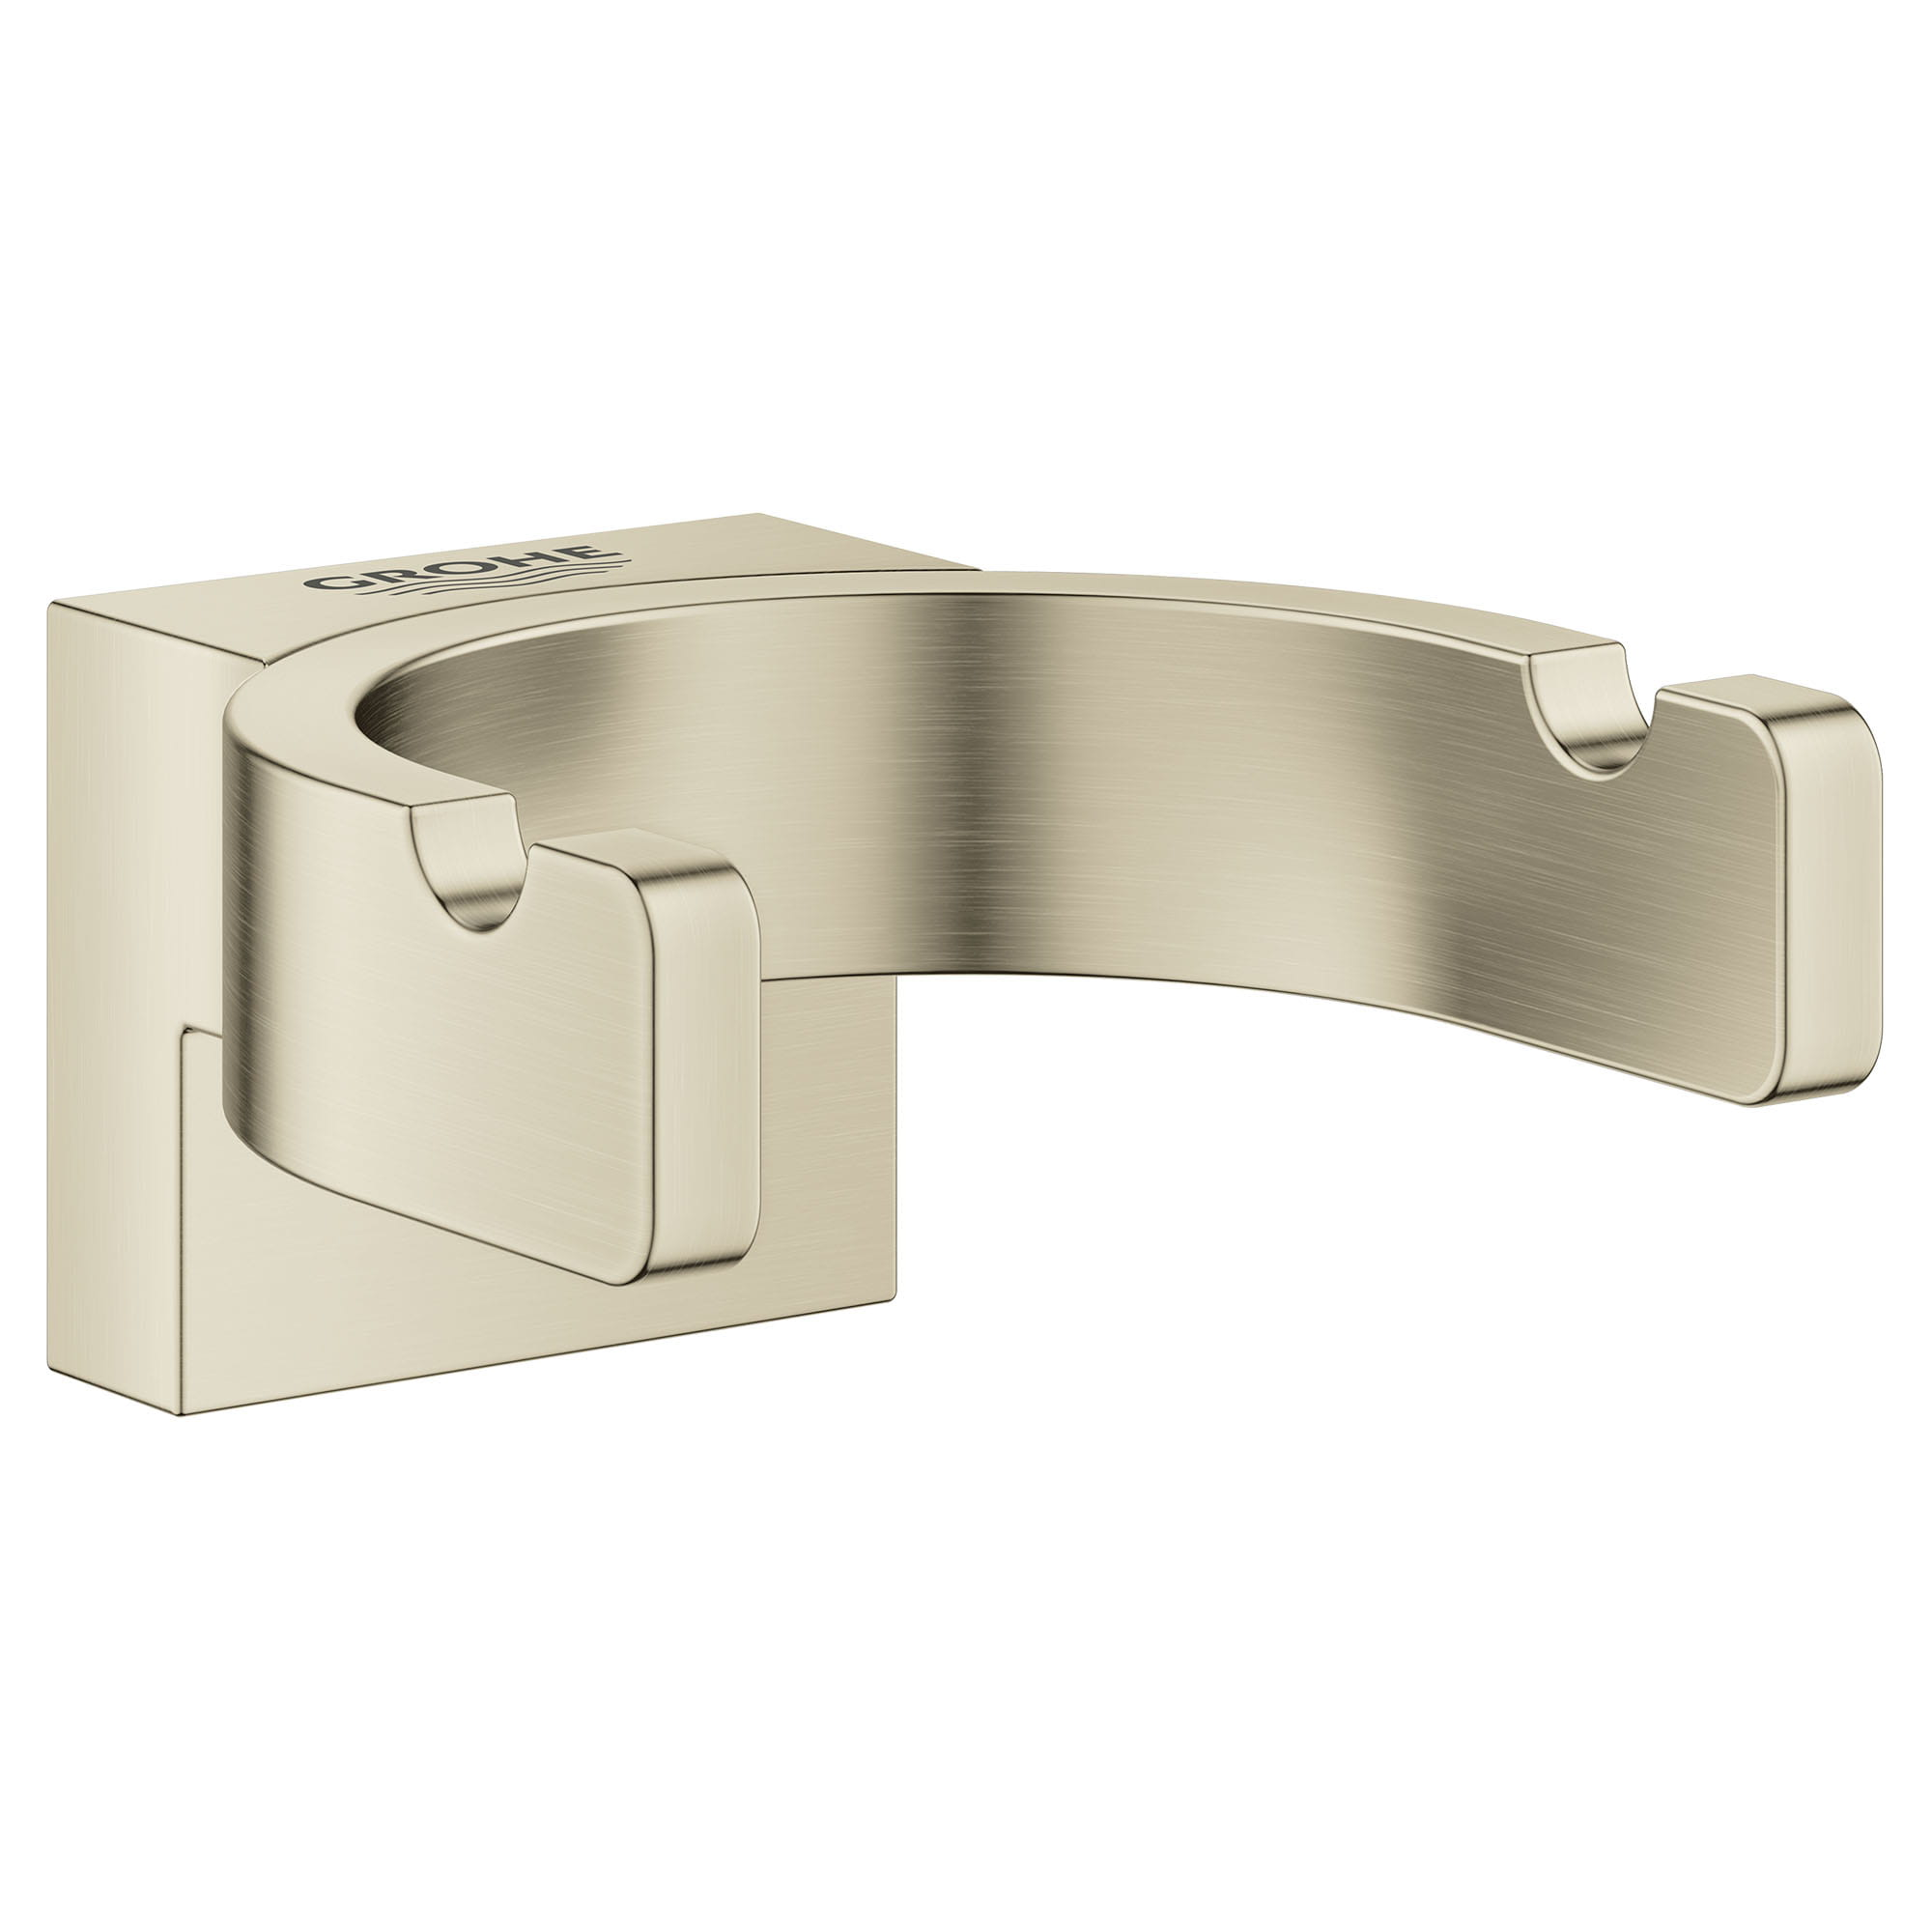 Crochet GROHE BRUSHED NICKEL